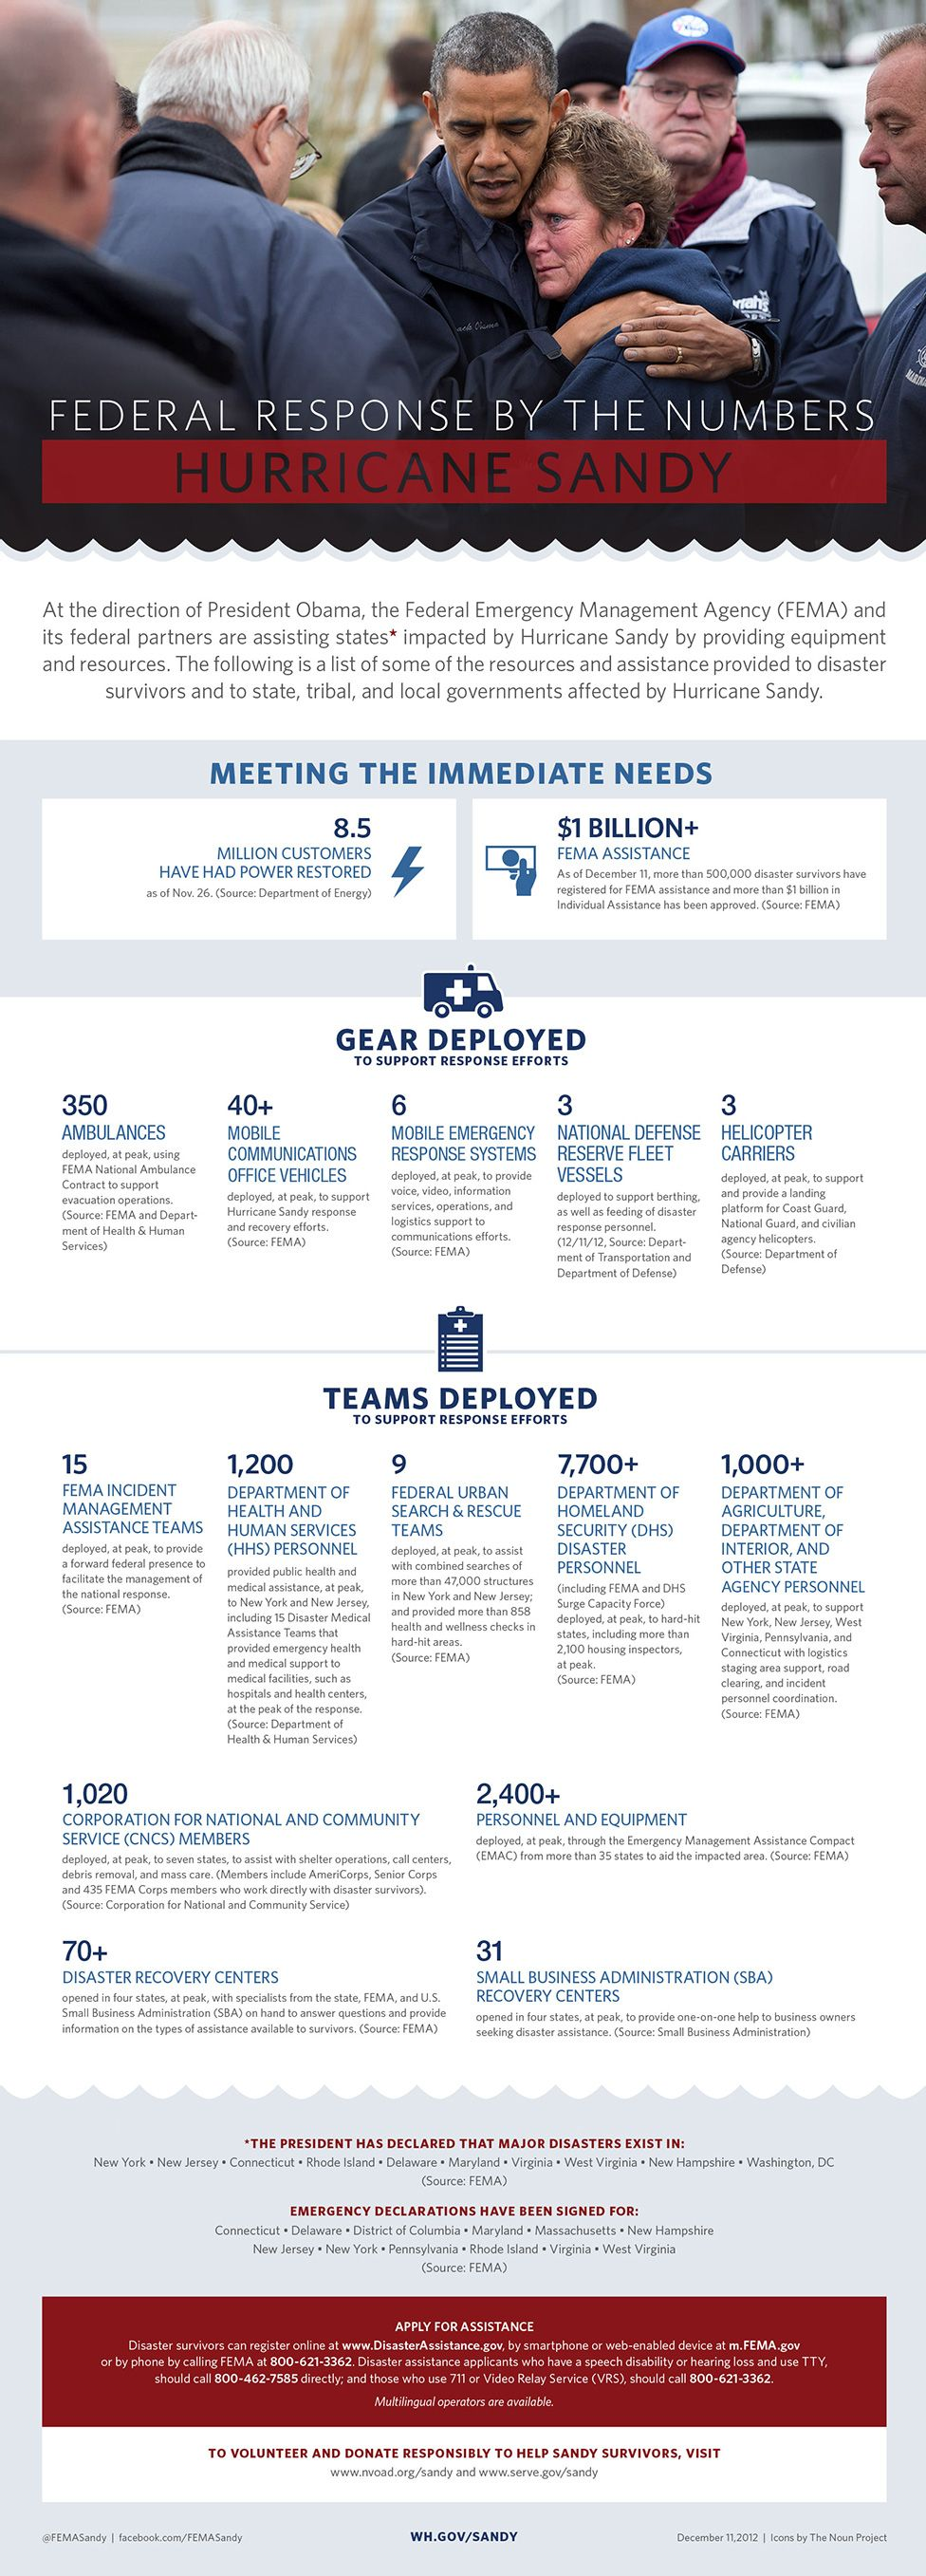 Federal Response By The Numbers Hurricane Sandy Hurricane Sandy